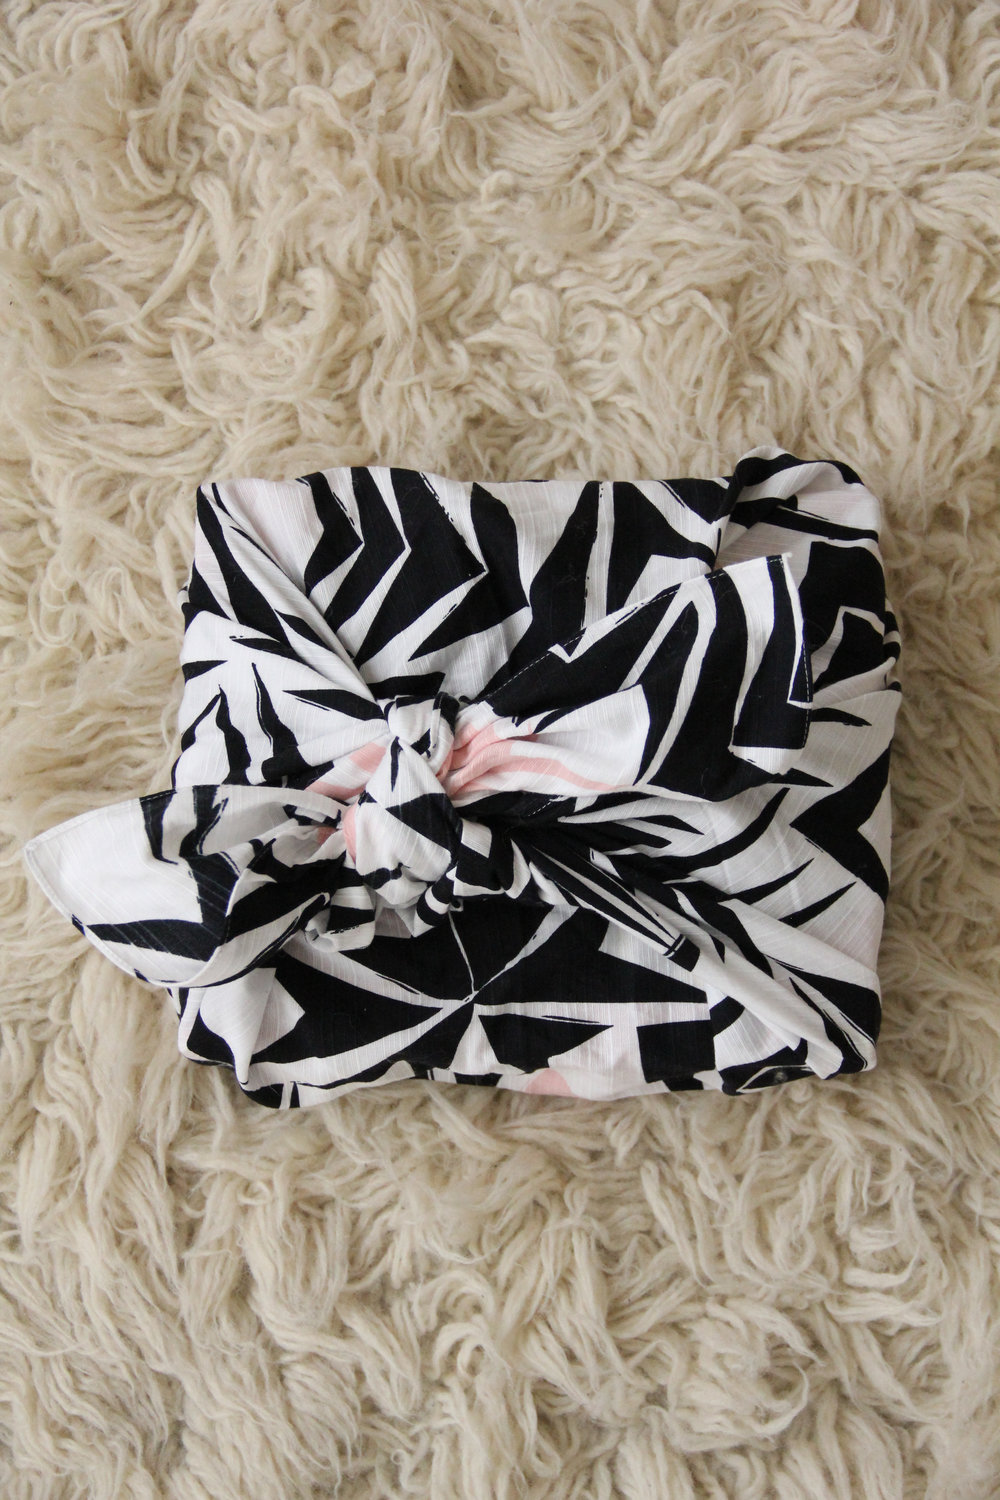 My furoshiki wrapping a gift